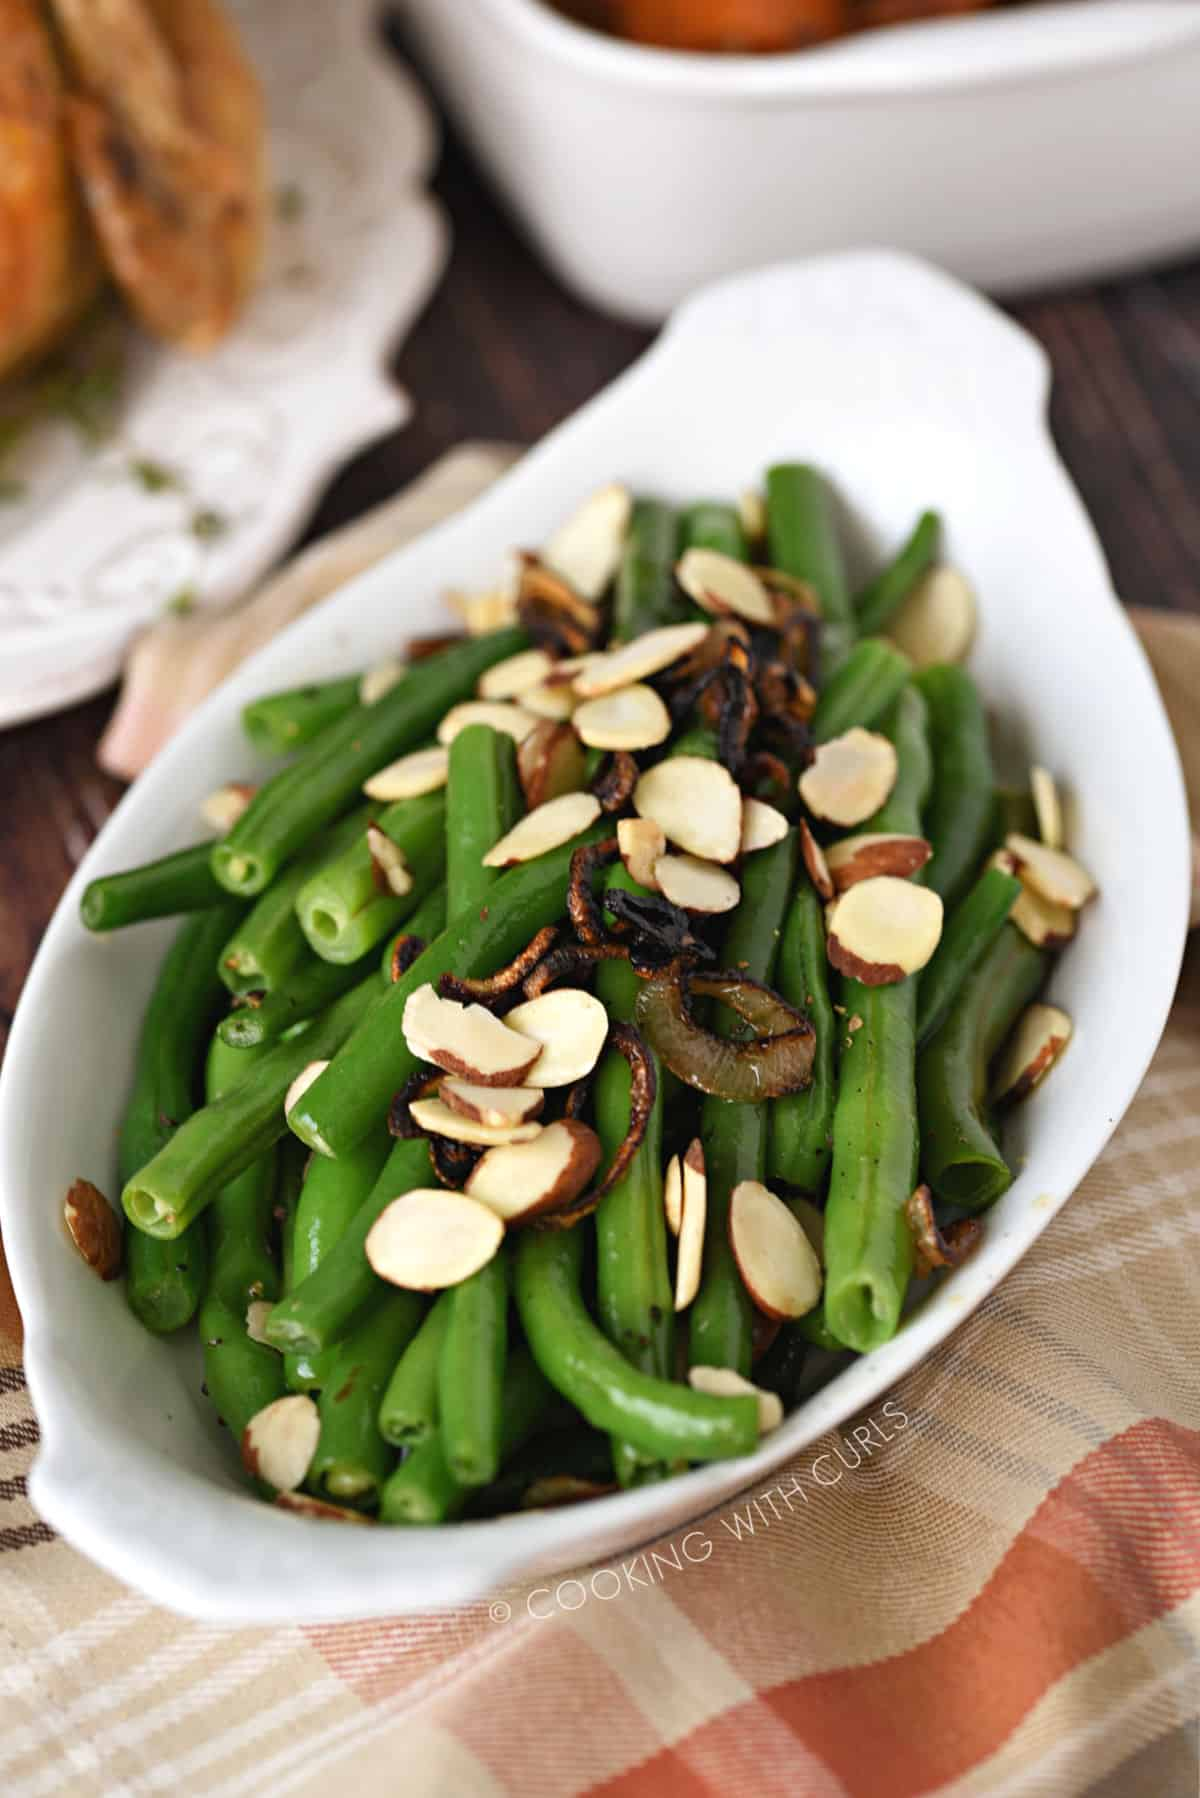 Fresh Green Beans with Caramelized Shallots and Almonds in a white au gratin dish sitting on a tan, orange and white plaid napkin.